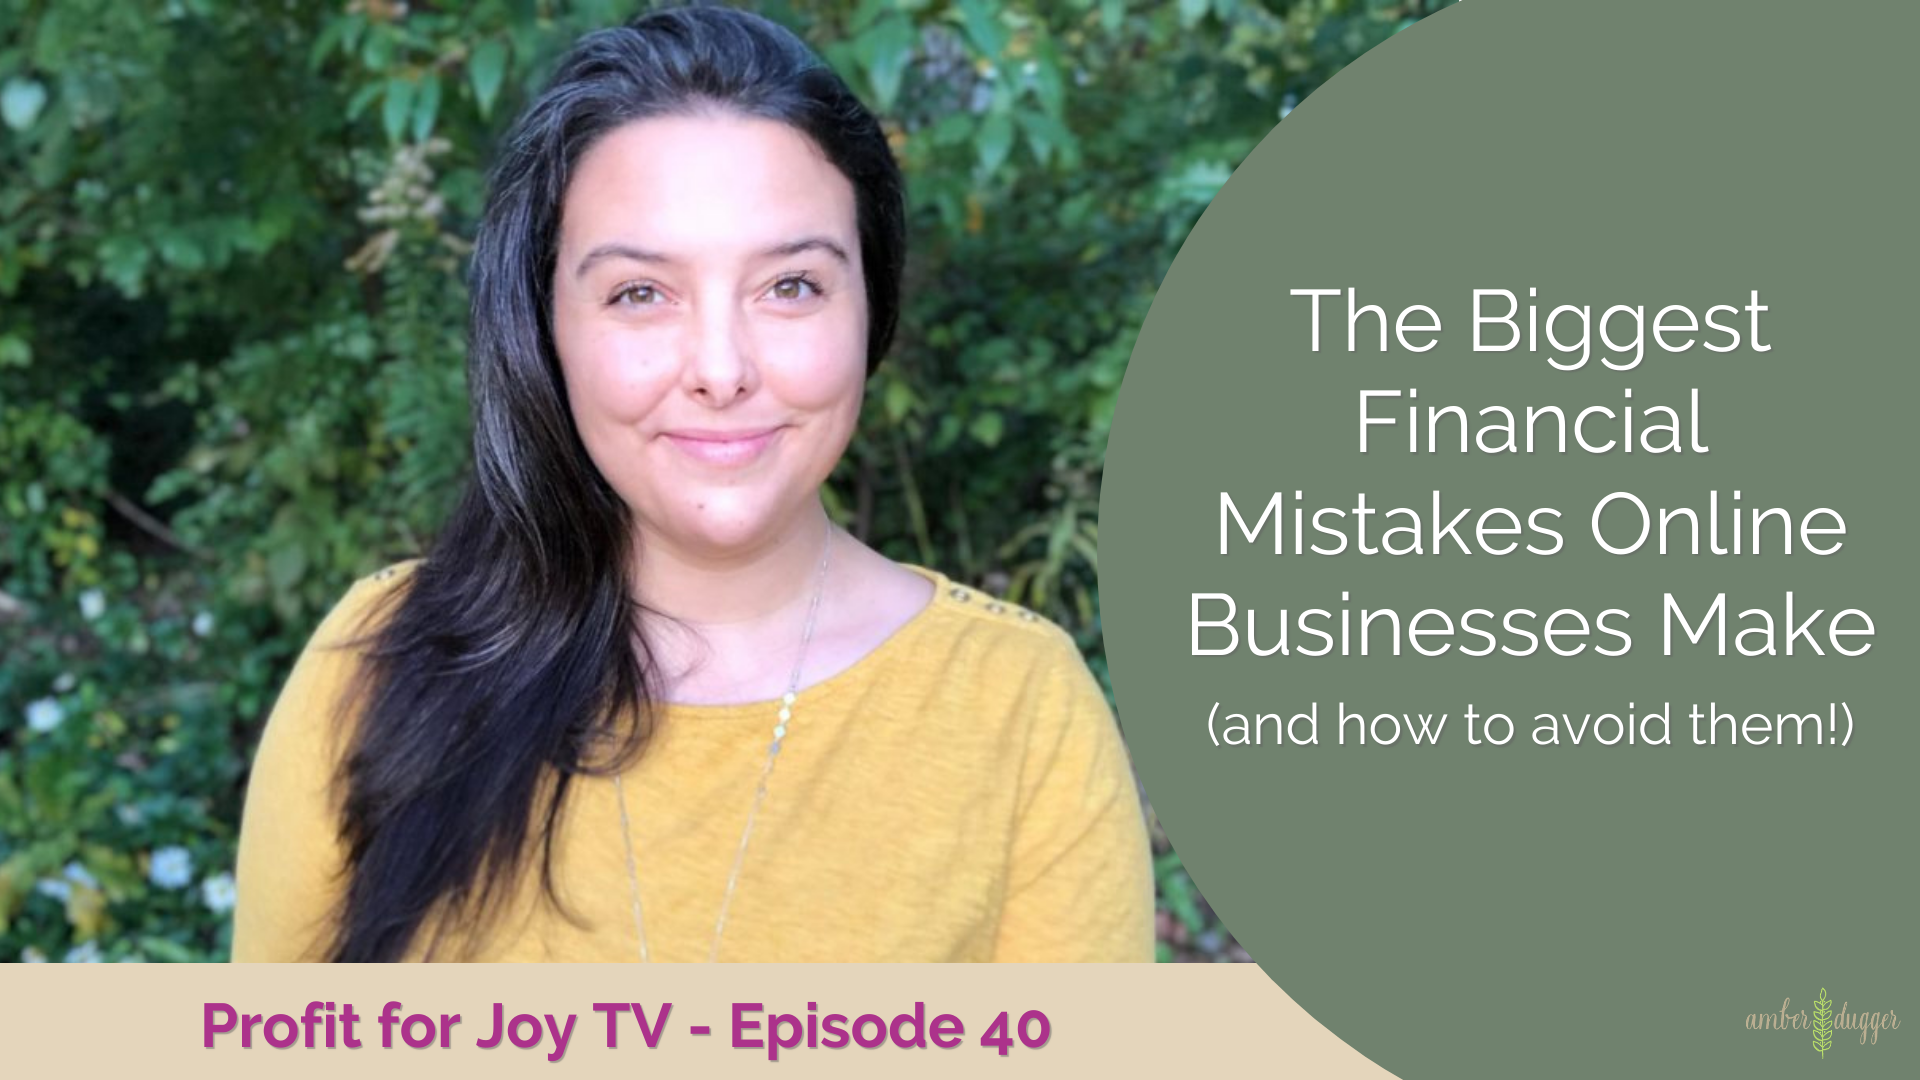 The Biggest Financial Mistakes Online Businesses Make (and how to avoid them!)